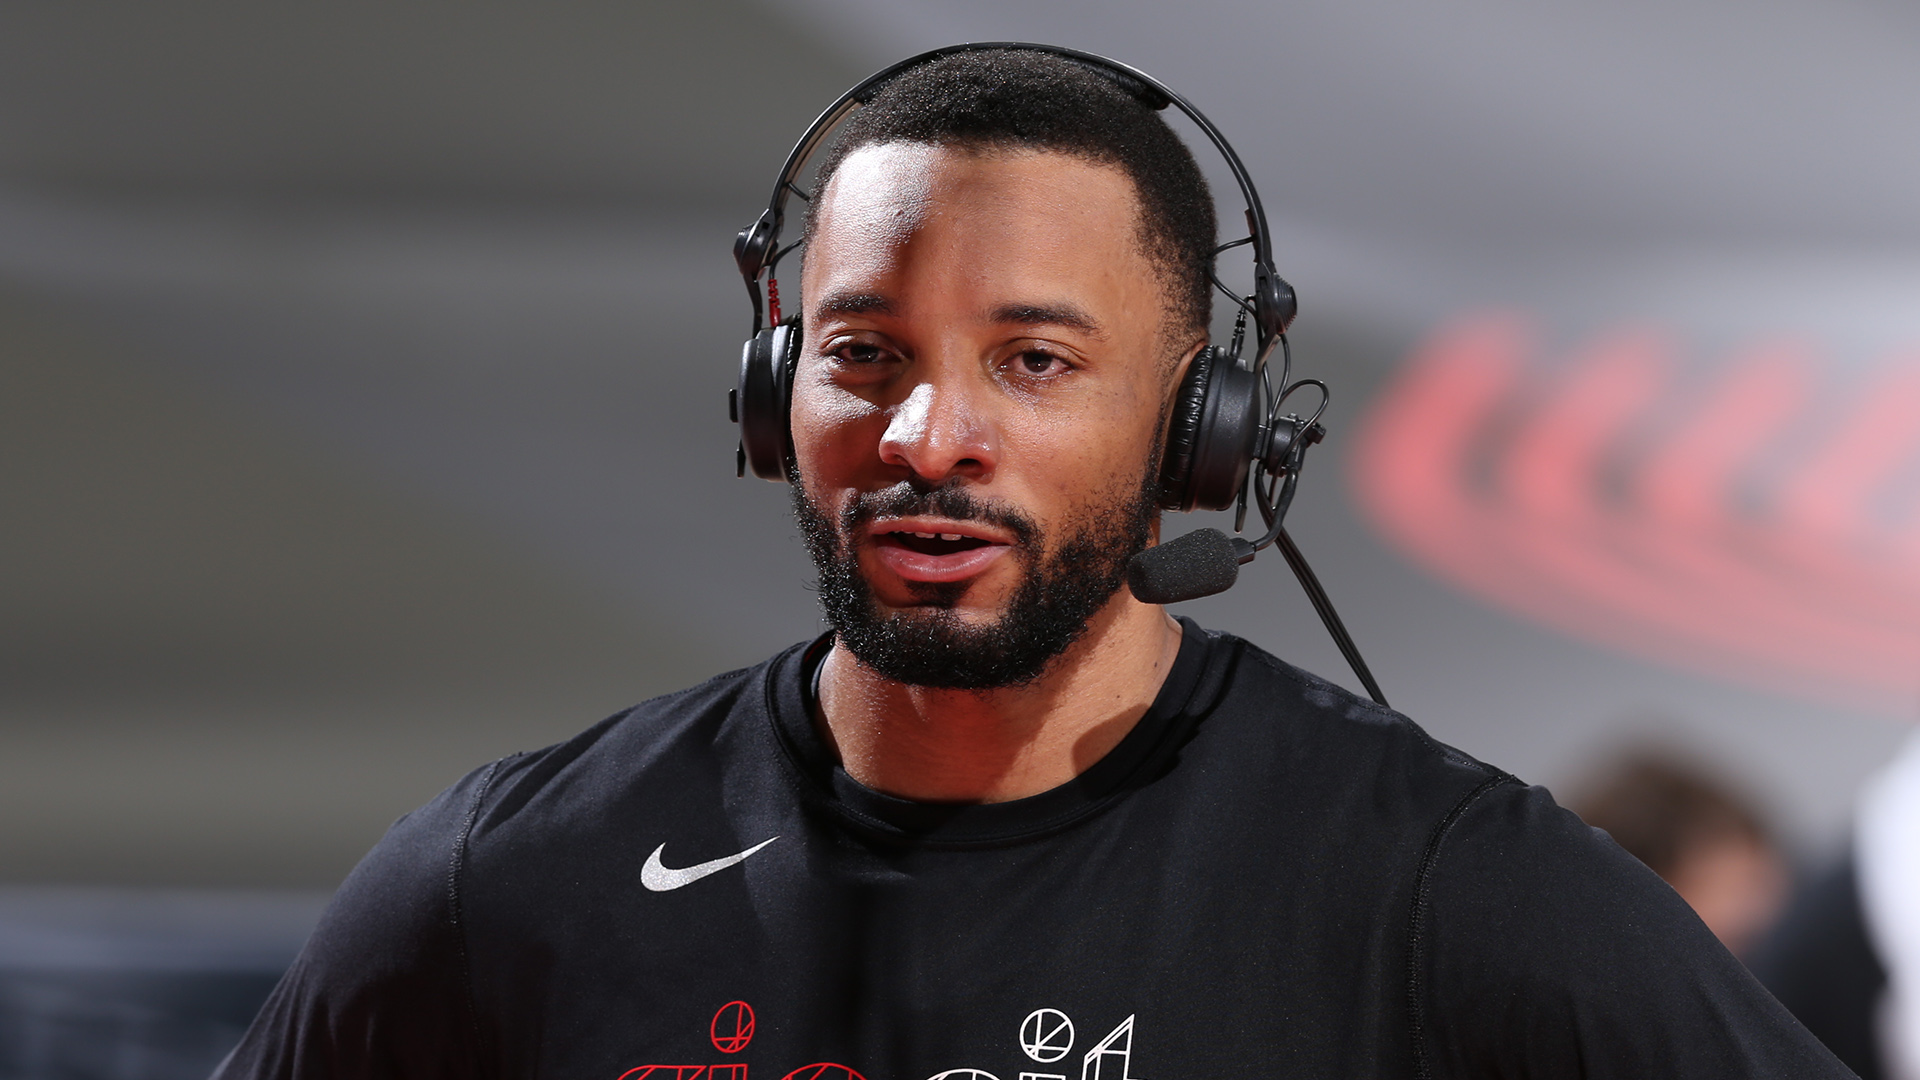 Norman Powell: 'I relish in those moments' of shutting down guys